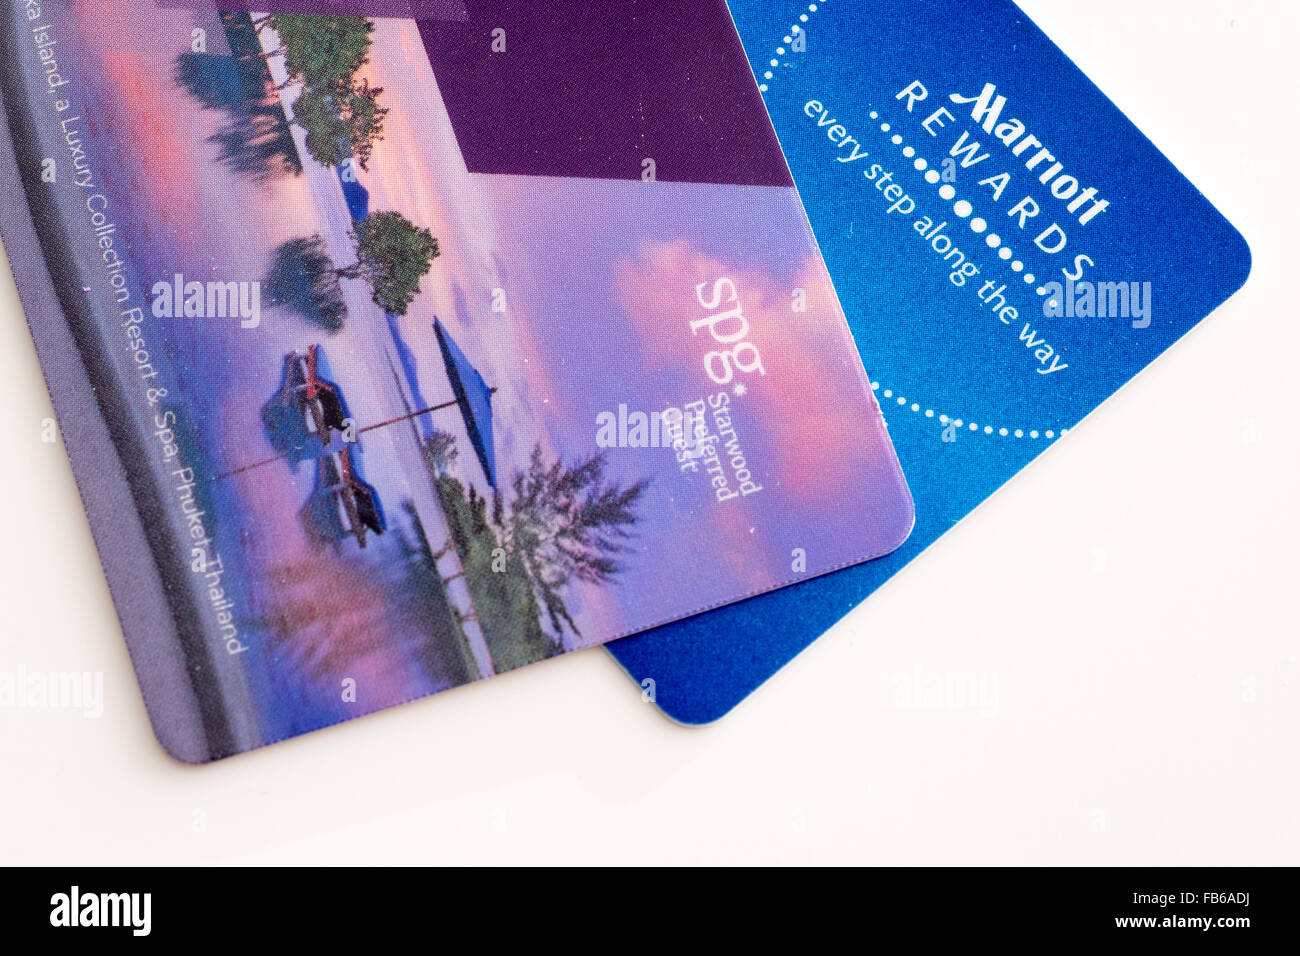 Starwood Preferred Guest and Marriott Rewards loyalty cards. - Stock Image